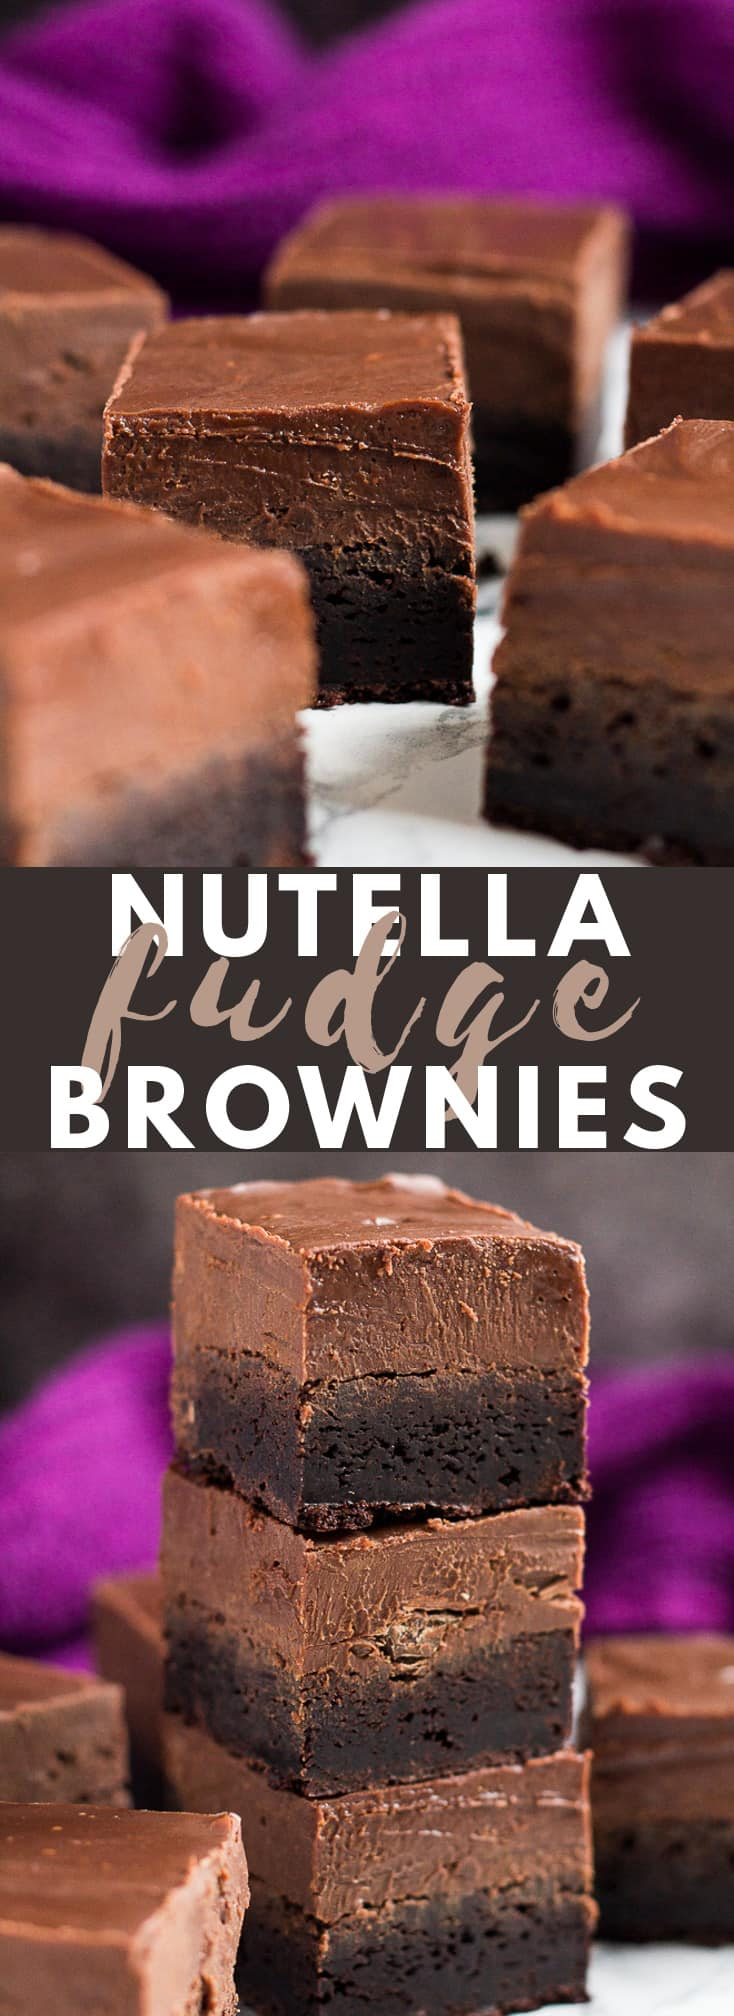 Nutella Fudge Brownies - Deliciously thick and fudgy brownies topped with a creamy Nutella fudge layer. The ultimate brownies! #nutella #fudge #brownies #brownierecipes